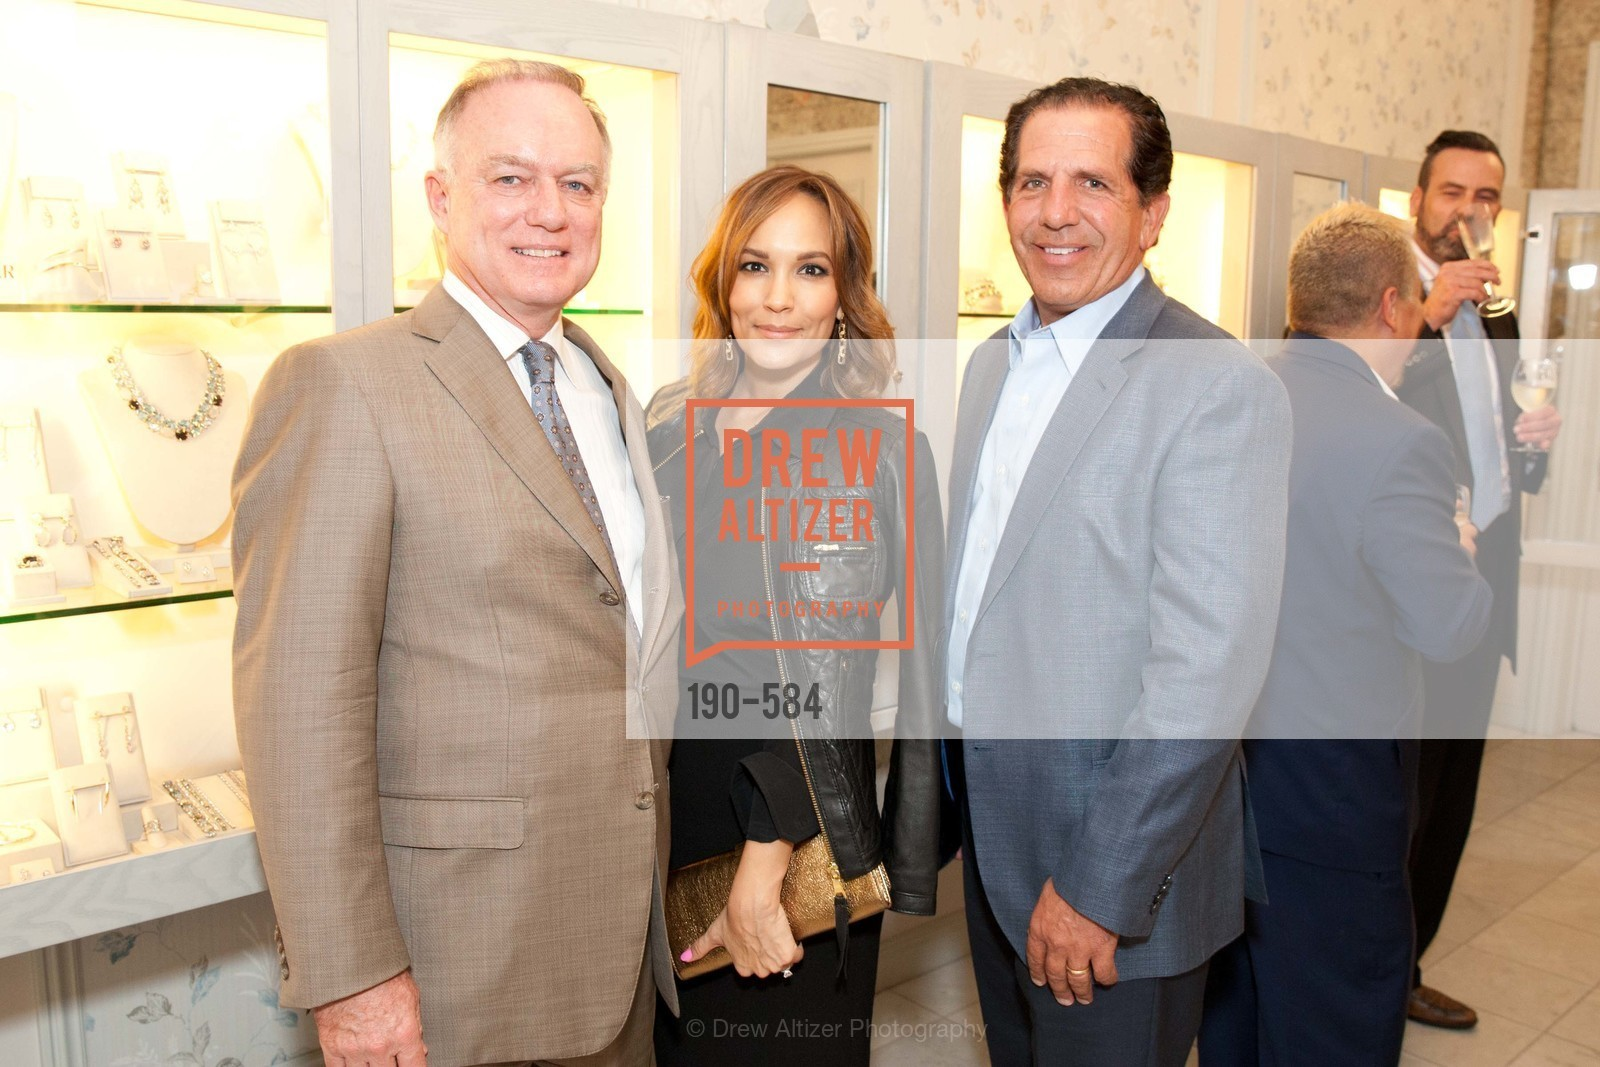 Don DuBain, Lora DuBain, Bob Federighi, Alexis Bittar Event; Support of the San Francisco Fall Antique Show Benefitting Enterprise for High School Students Francisco Fall Antique Show, benefiting Enterprise for High School Students, US, October 2nd, 2014,Drew Altizer, Drew Altizer Photography, full-service agency, private events, San Francisco photographer, photographer california